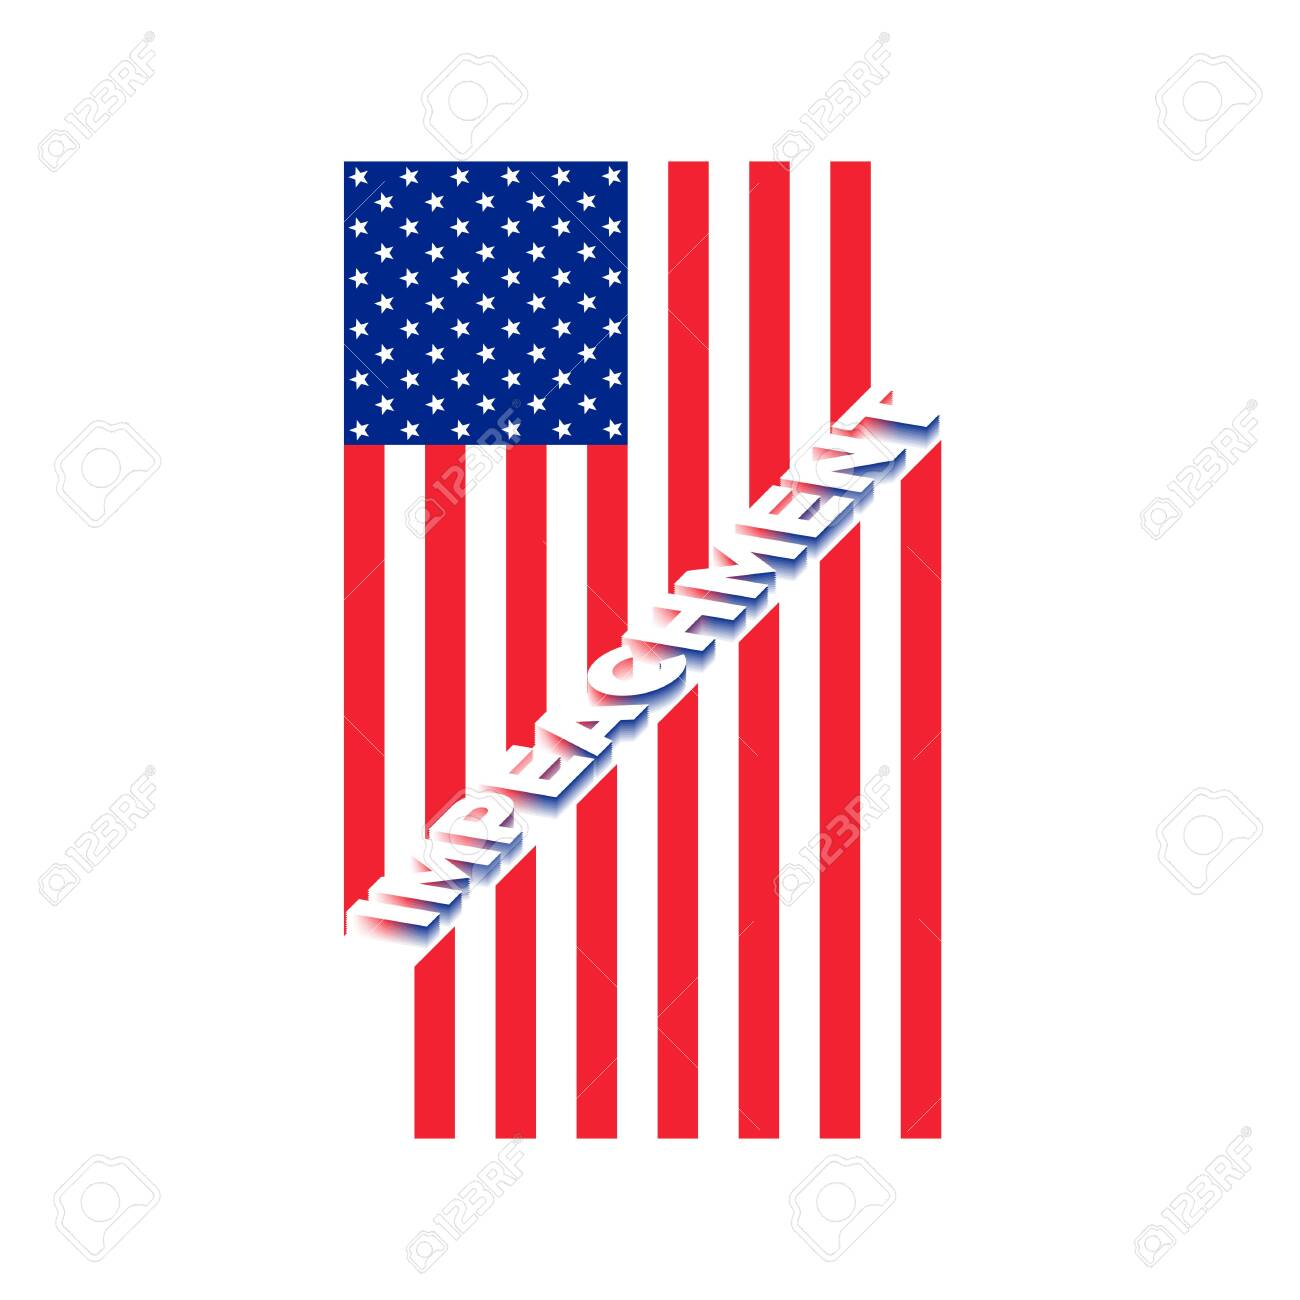 American Flag To Impeachment Inquiry Procedure State Symbol Royalty Free Cliparts Vectors And Stock Illustration Image 130539904